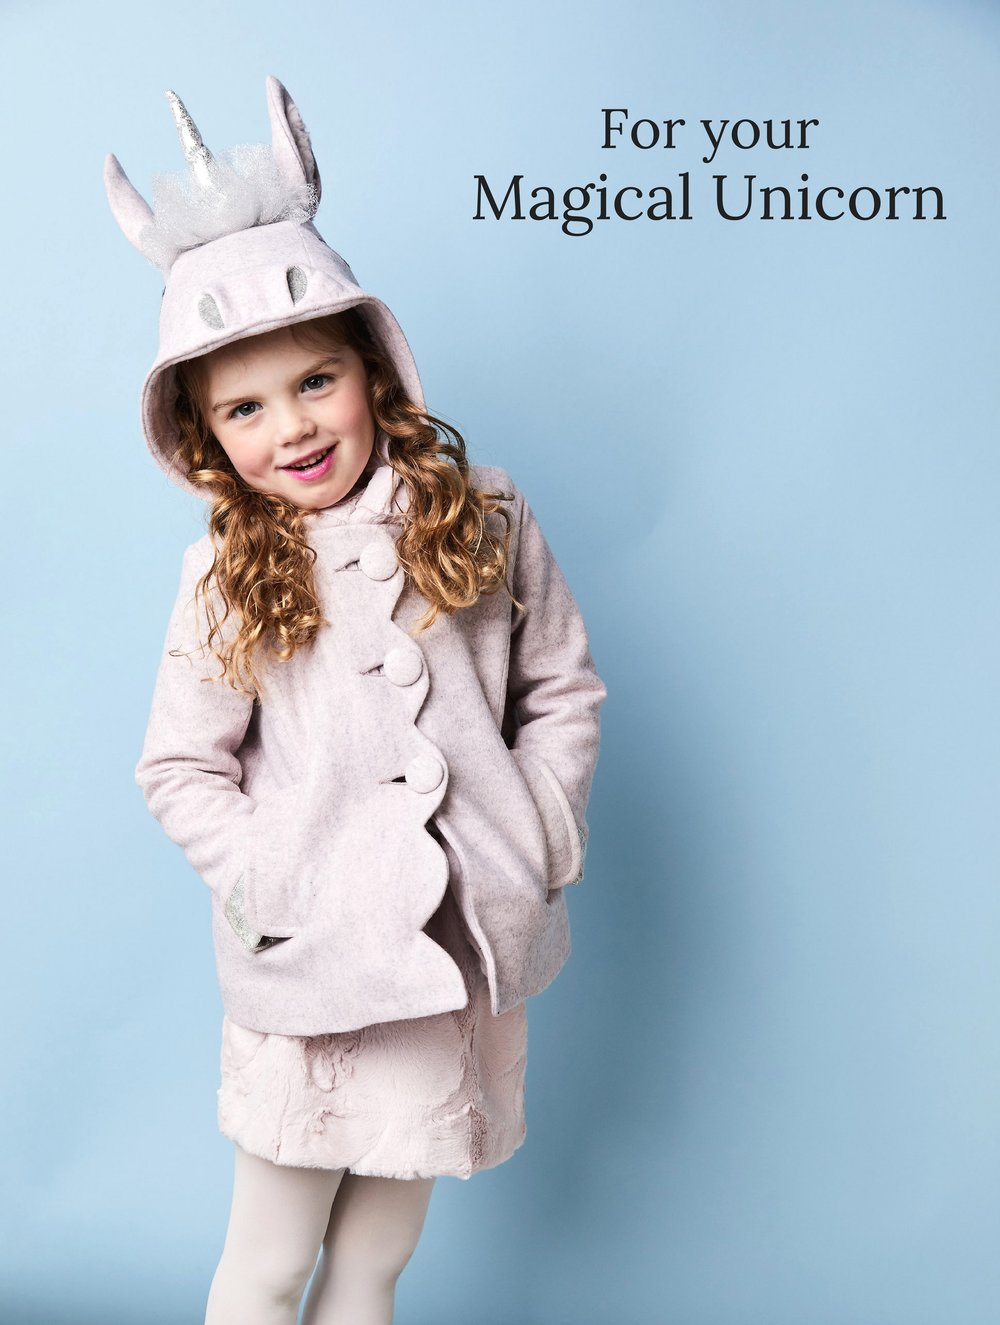 Magical Unicorn.jpg